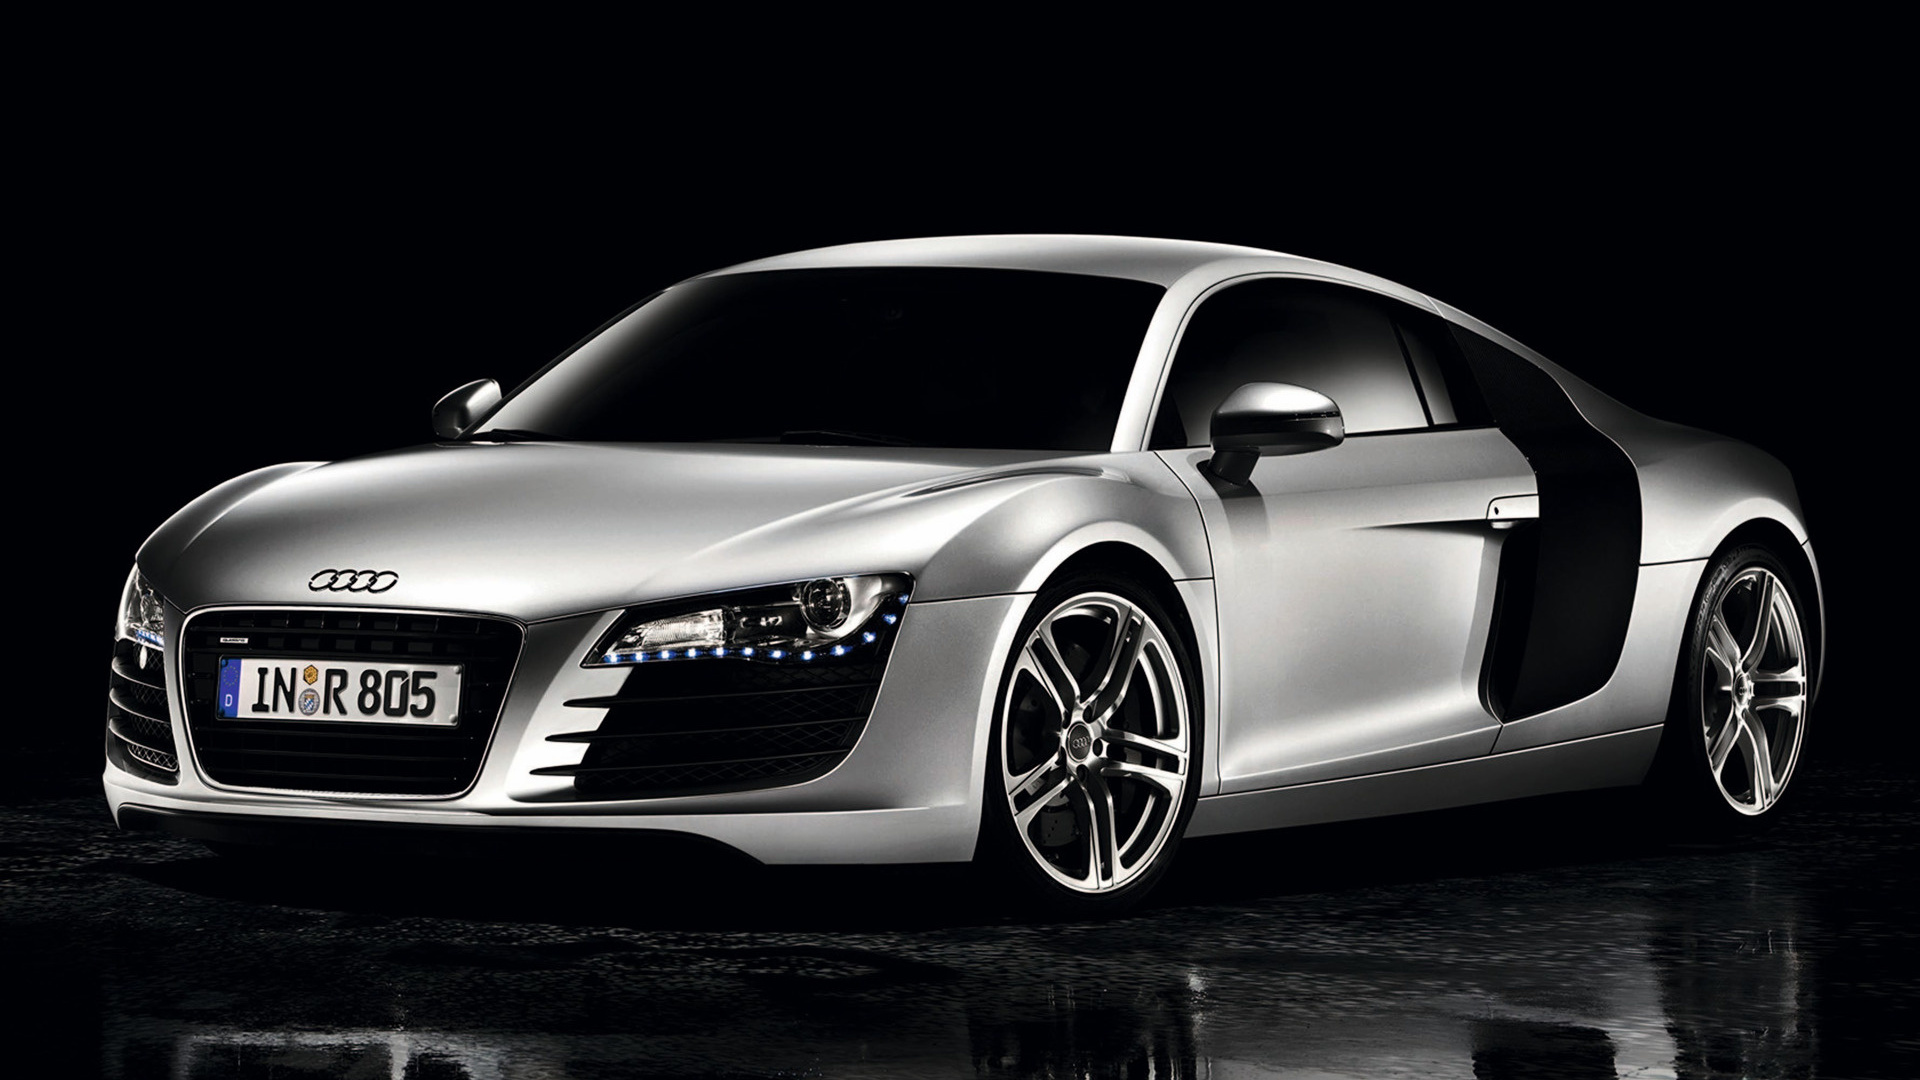 2007 audi r8 coupe wallpapers and hd images car pixel. Black Bedroom Furniture Sets. Home Design Ideas